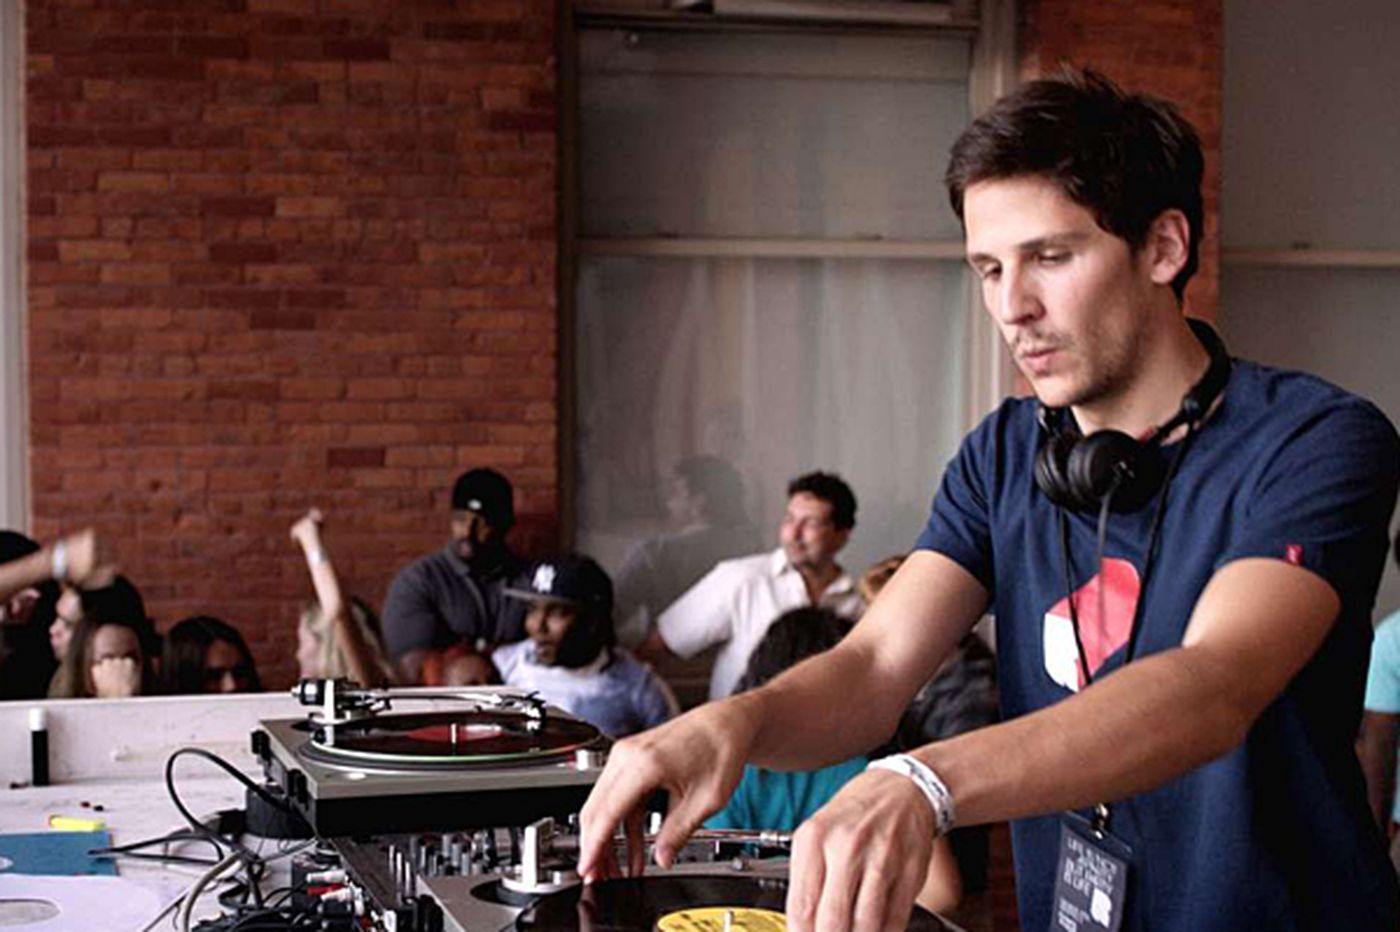 Time drifts for DJ in music-fueled 'Eden'